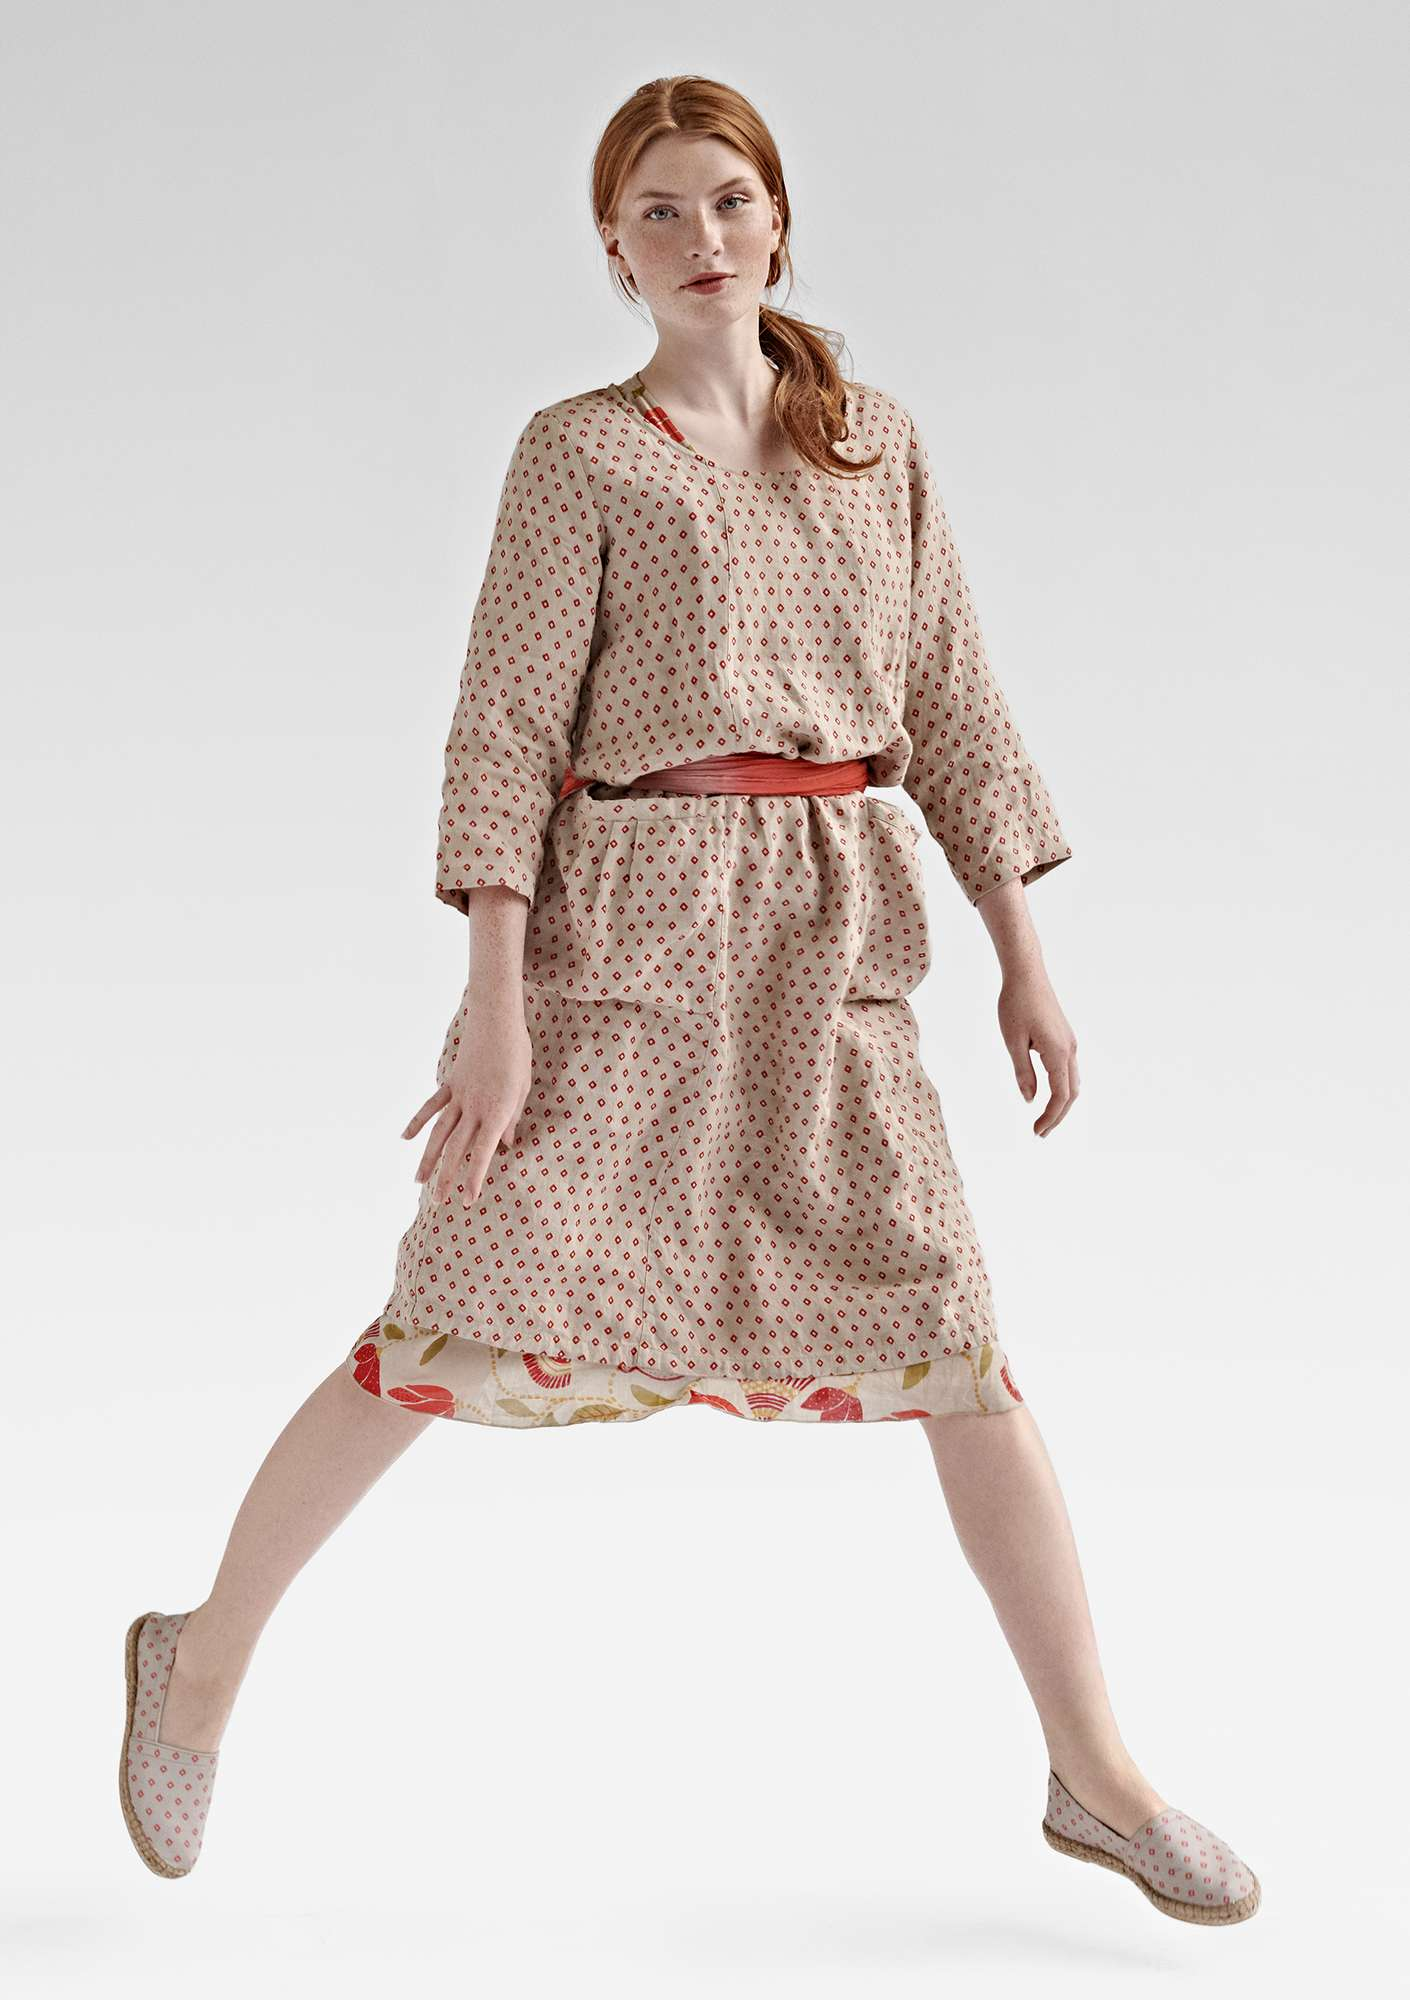 ROMB dress in linen natural/patterned